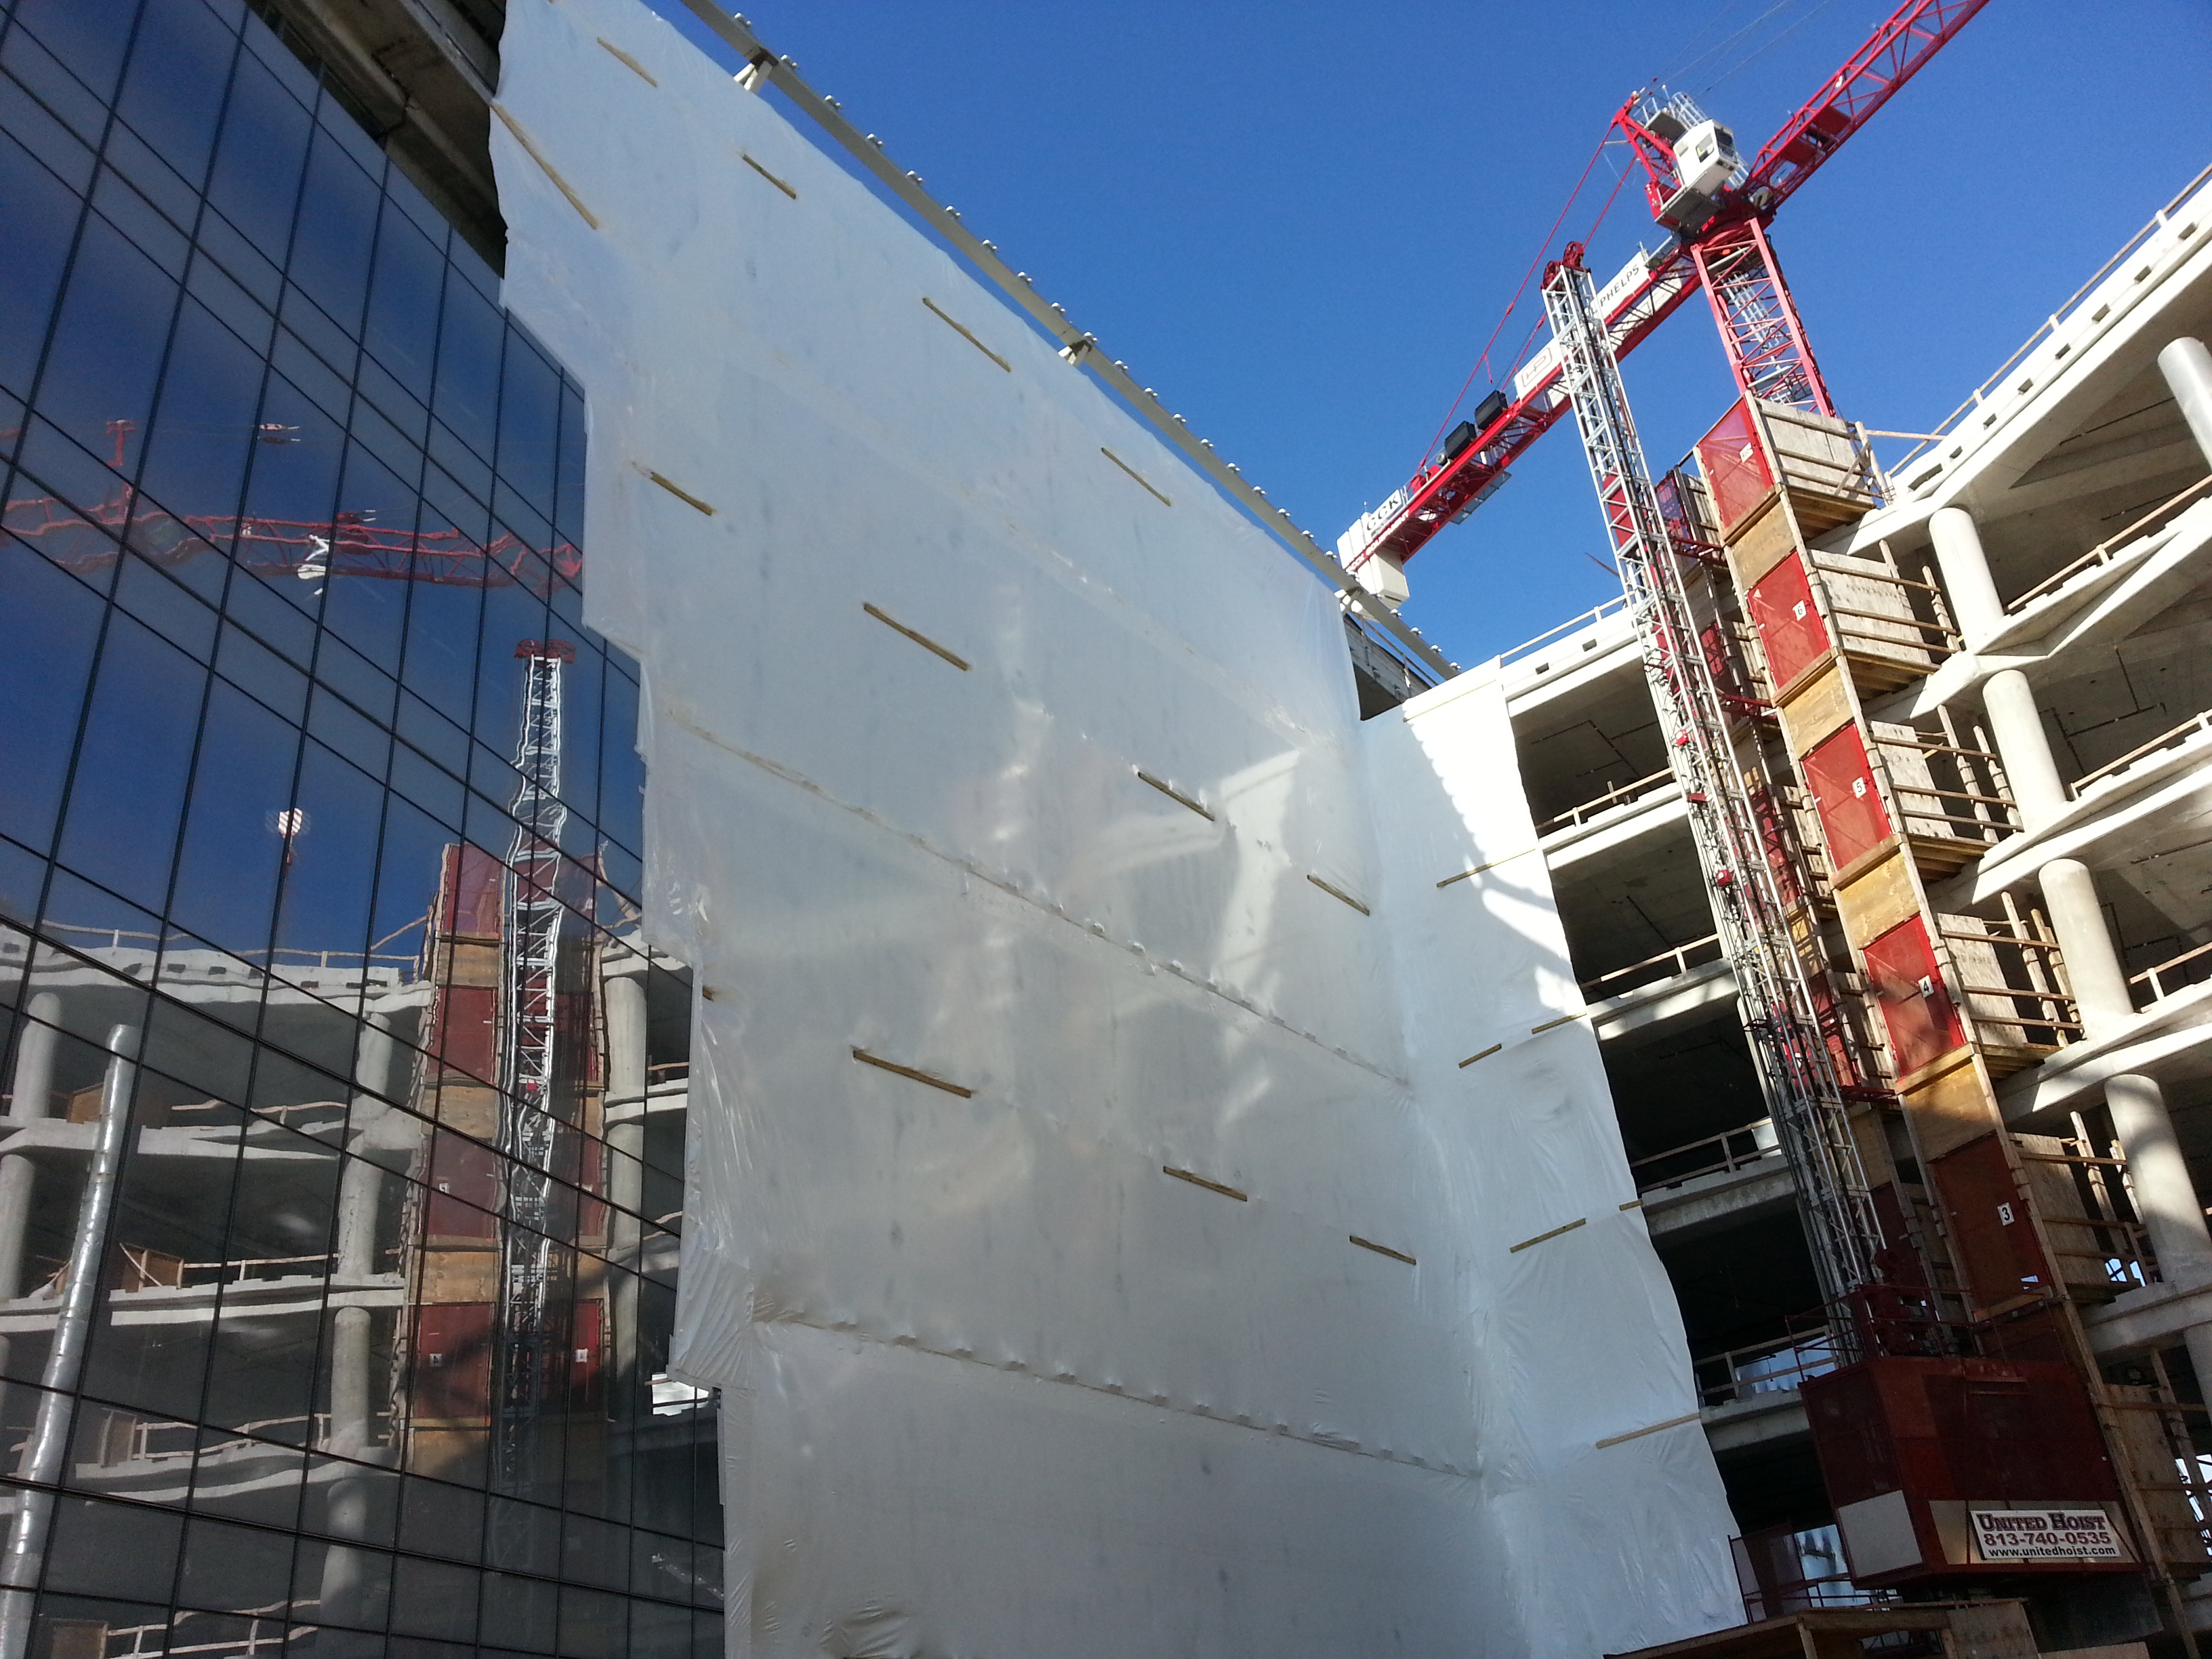 Curtainwall Delays Needed Shrink Wrap Containment